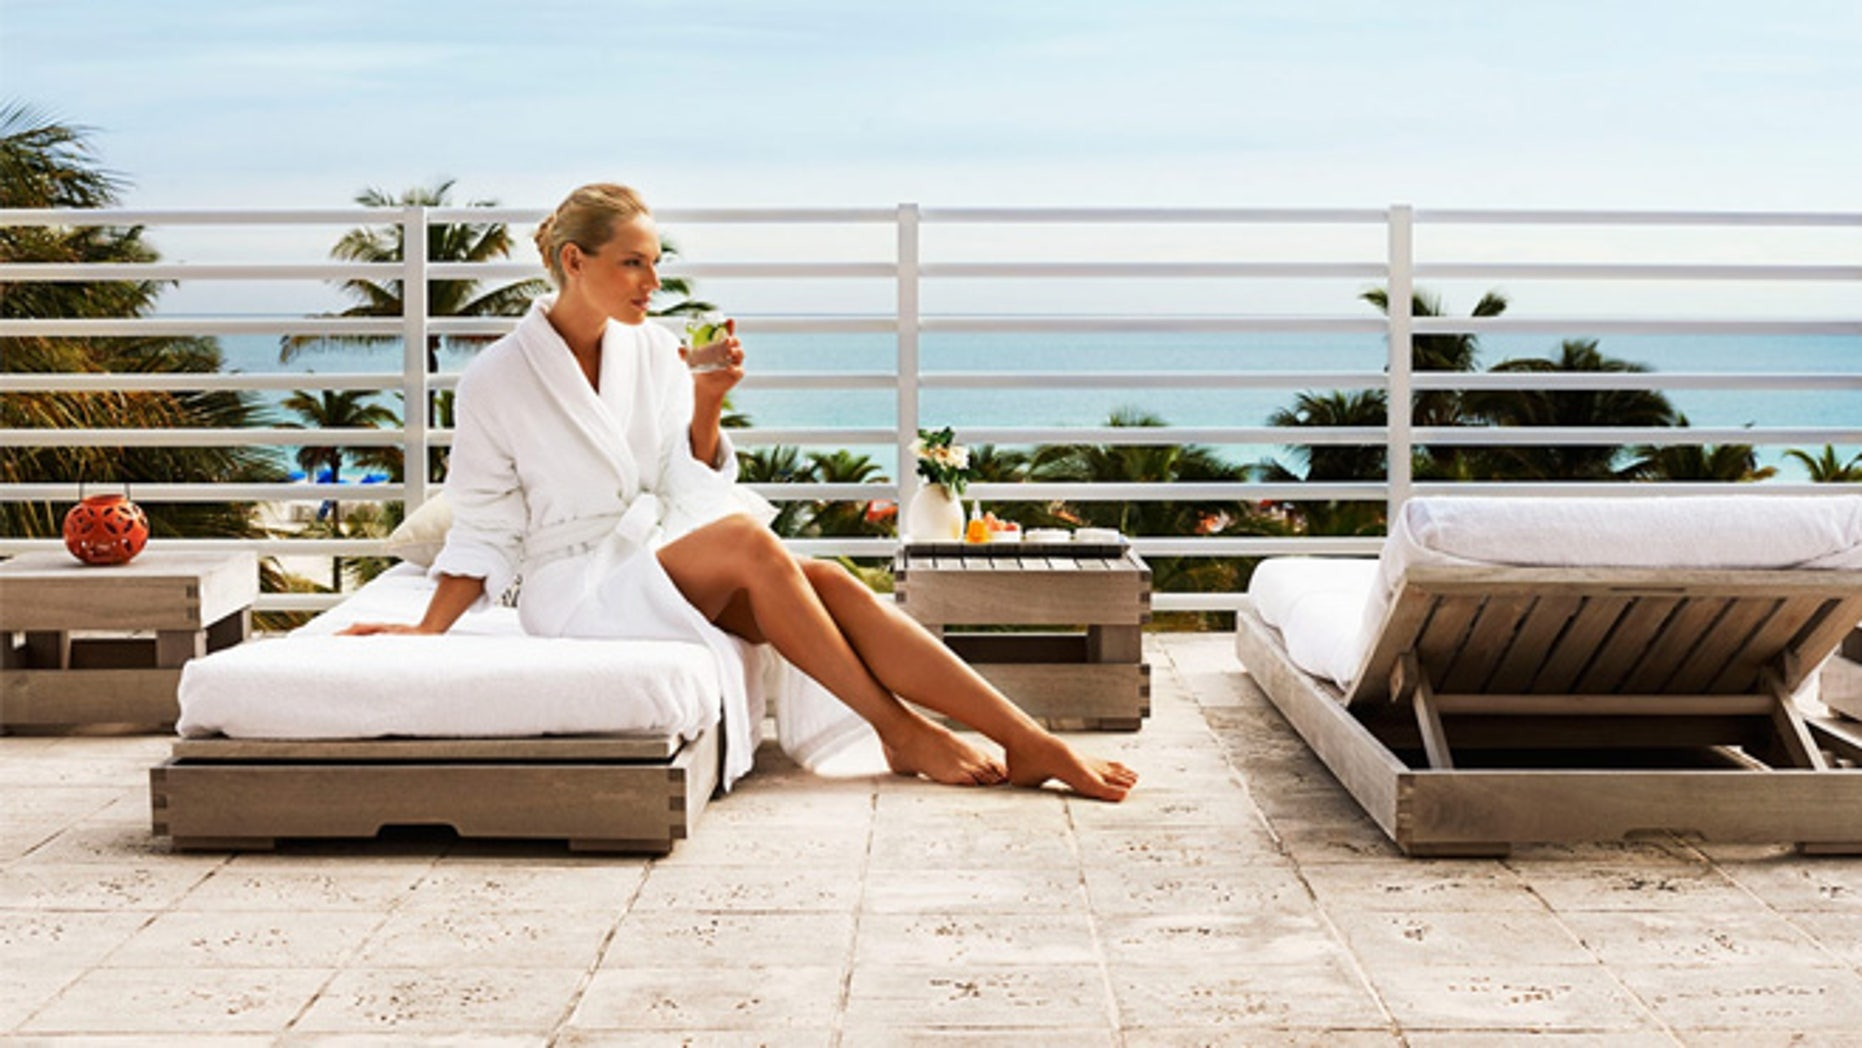 The James Royal Palm has the Pocket Assistant, a downloadable app that enables guests to book their reservation, extend their stay, check in and check out, schedule a spa appointment and more.